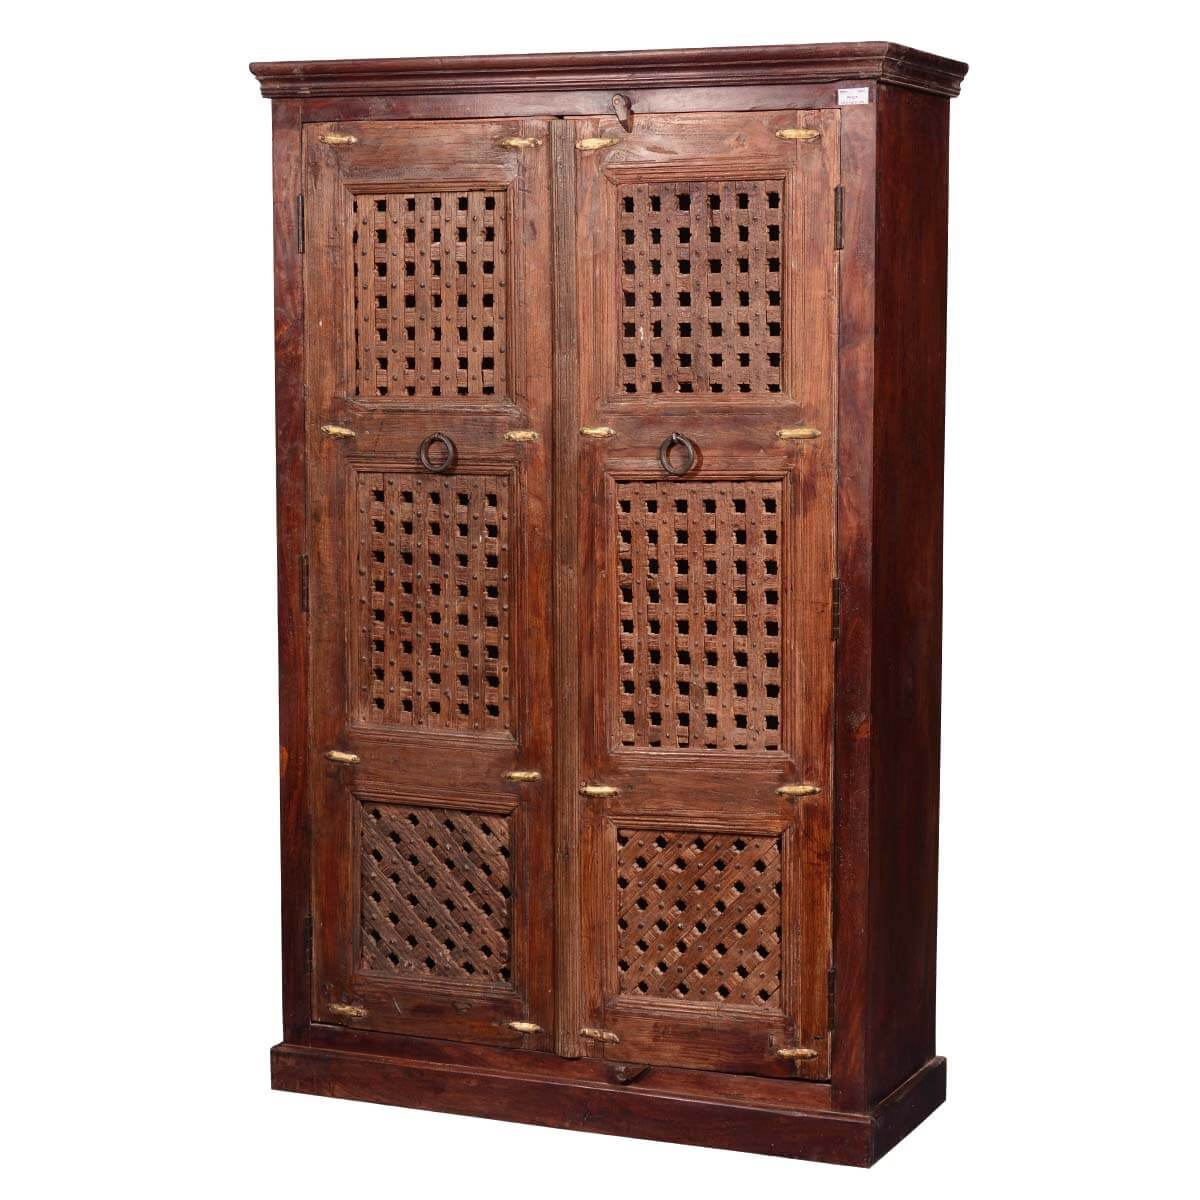 Wooden Armoire Wardrobe ~ Wooden screen door reclaimed wood quot wardrobe armoire